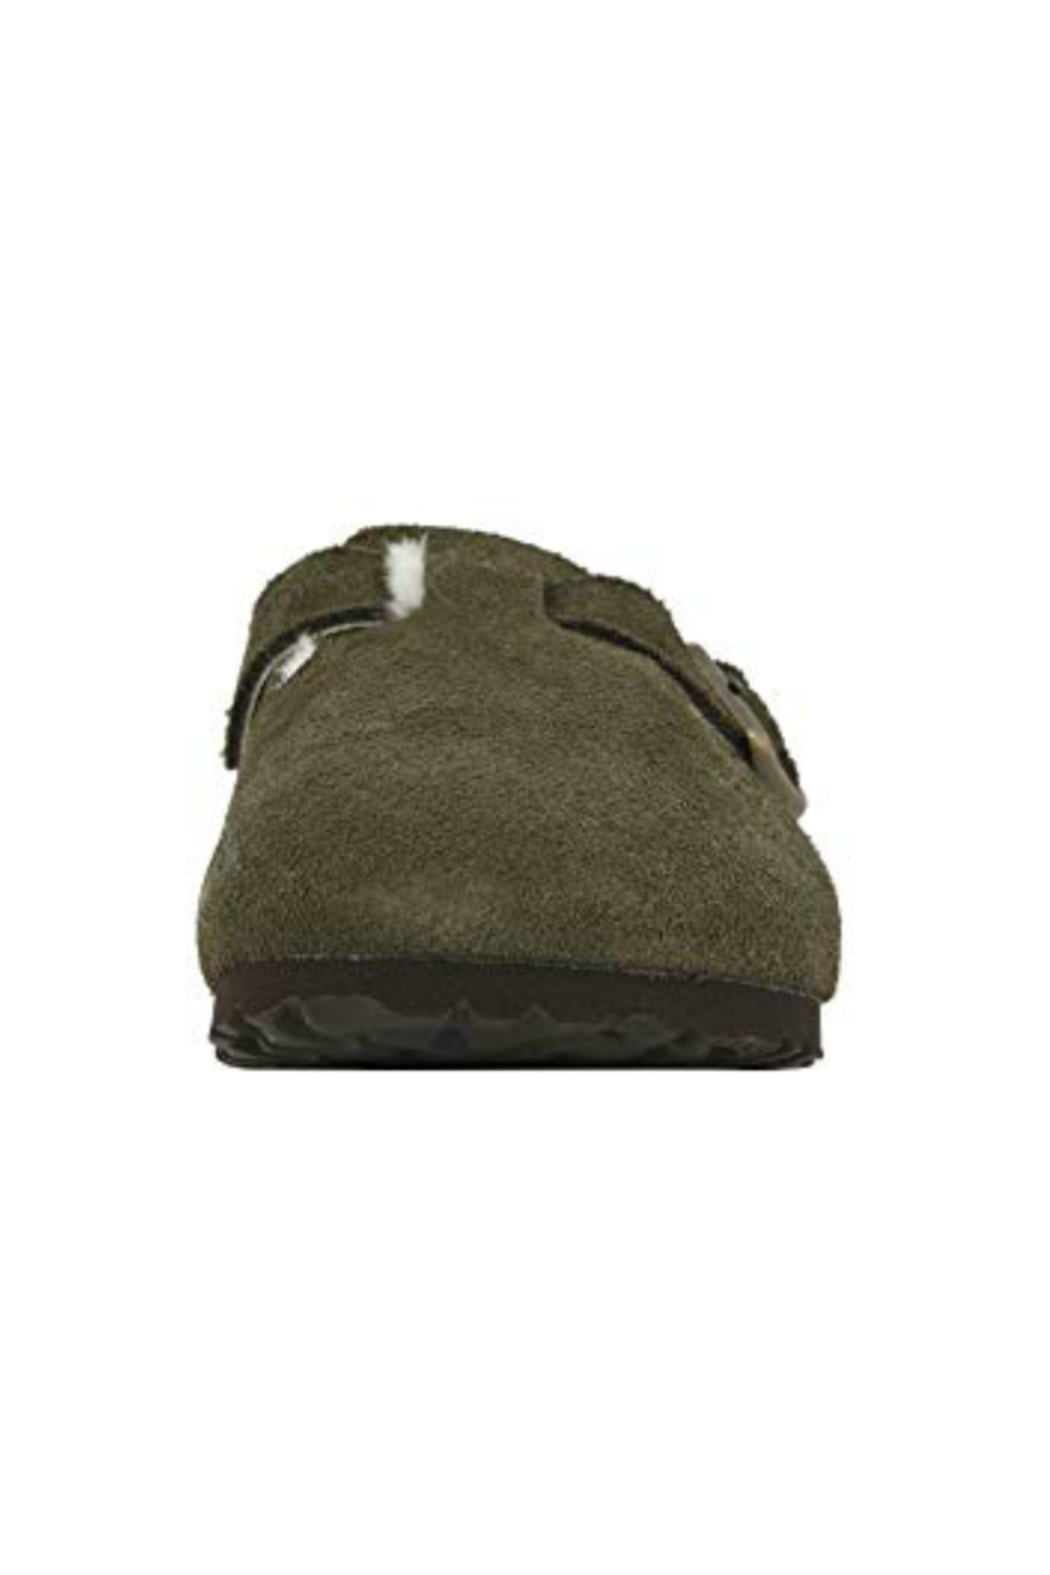 Birkenstock BOSTON FUR from New Jersey by Suburban Shoes